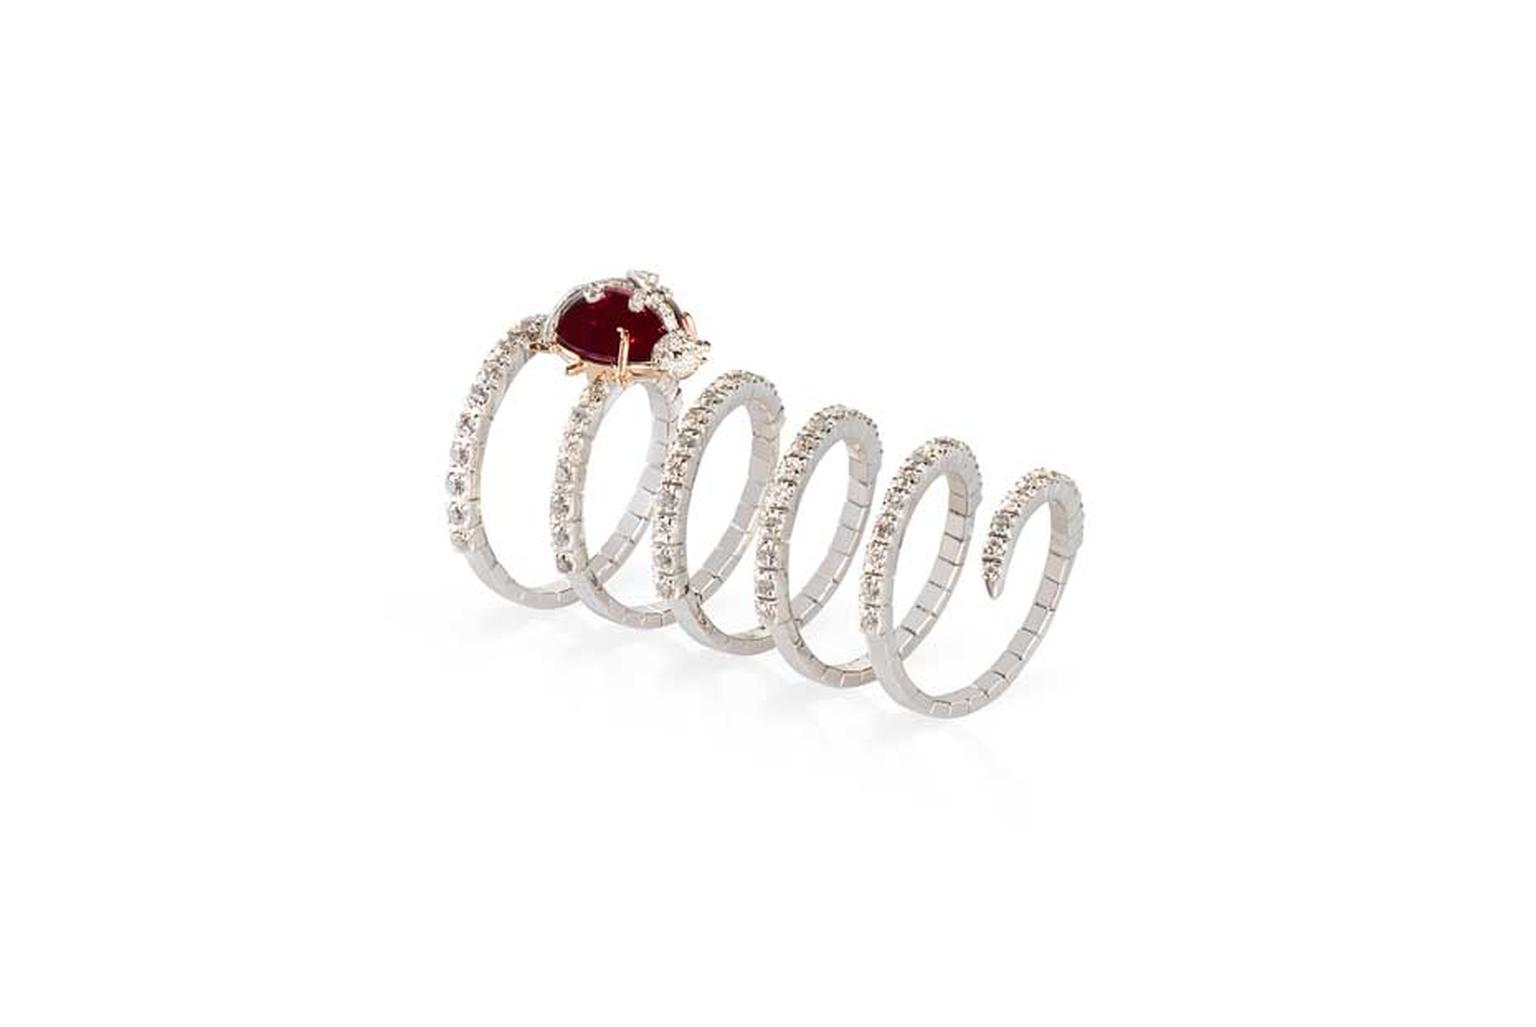 The adorable ruby Ladybug ring in 18ct gold with diamonds from Gismondi's Twirl collection.